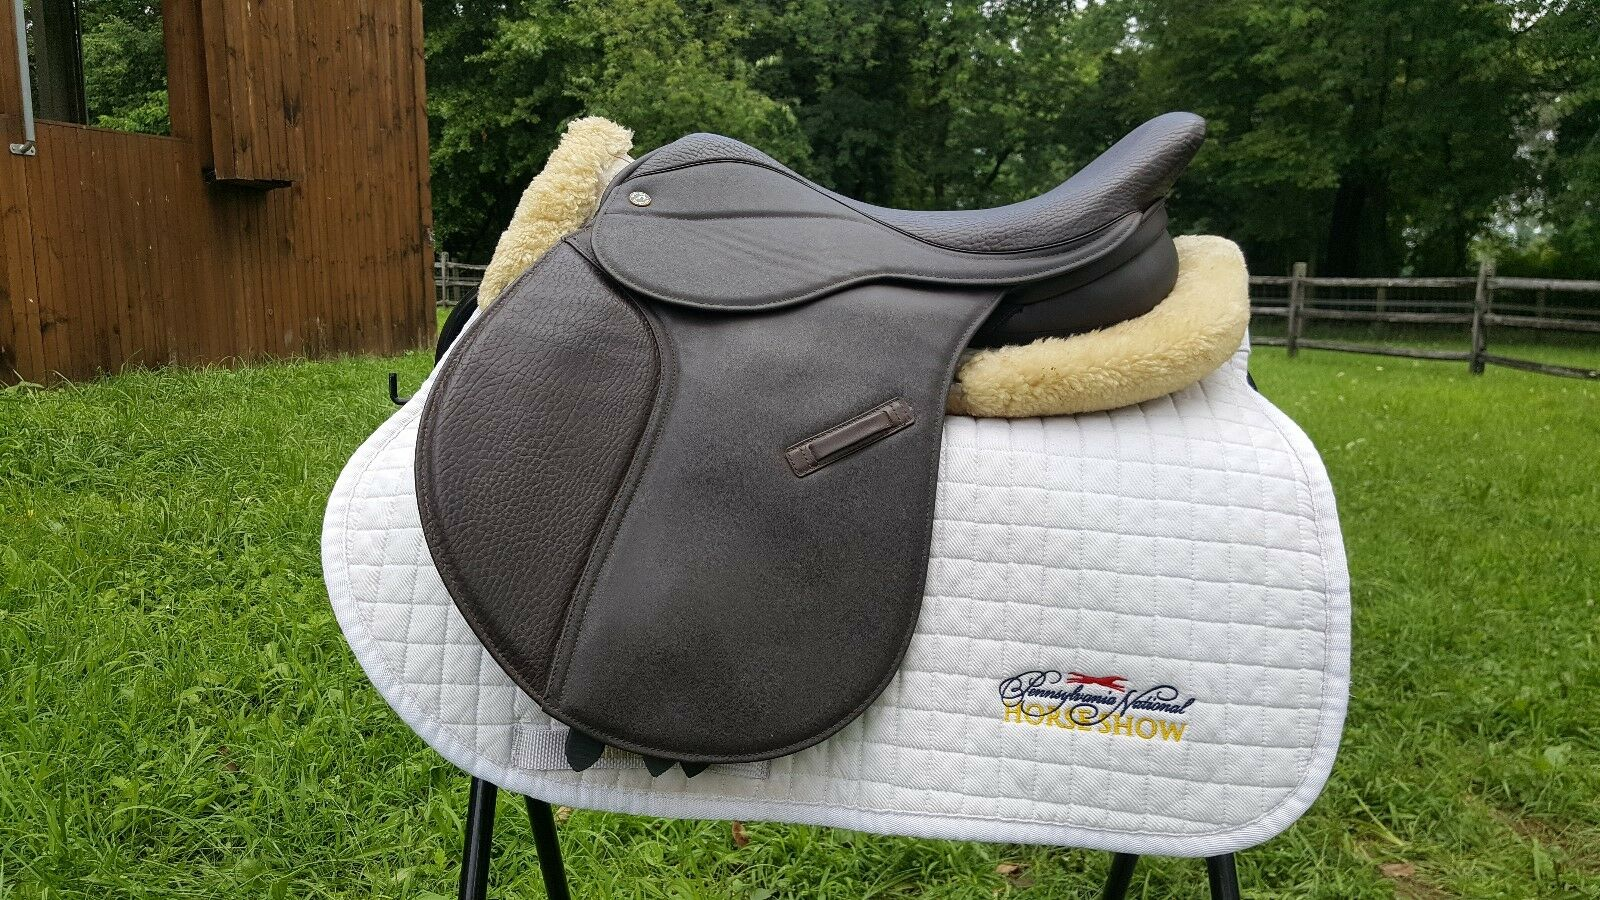 Dover ProRide Saddle 16.5  - braun - Synthetic - Never Used - M to MW tree